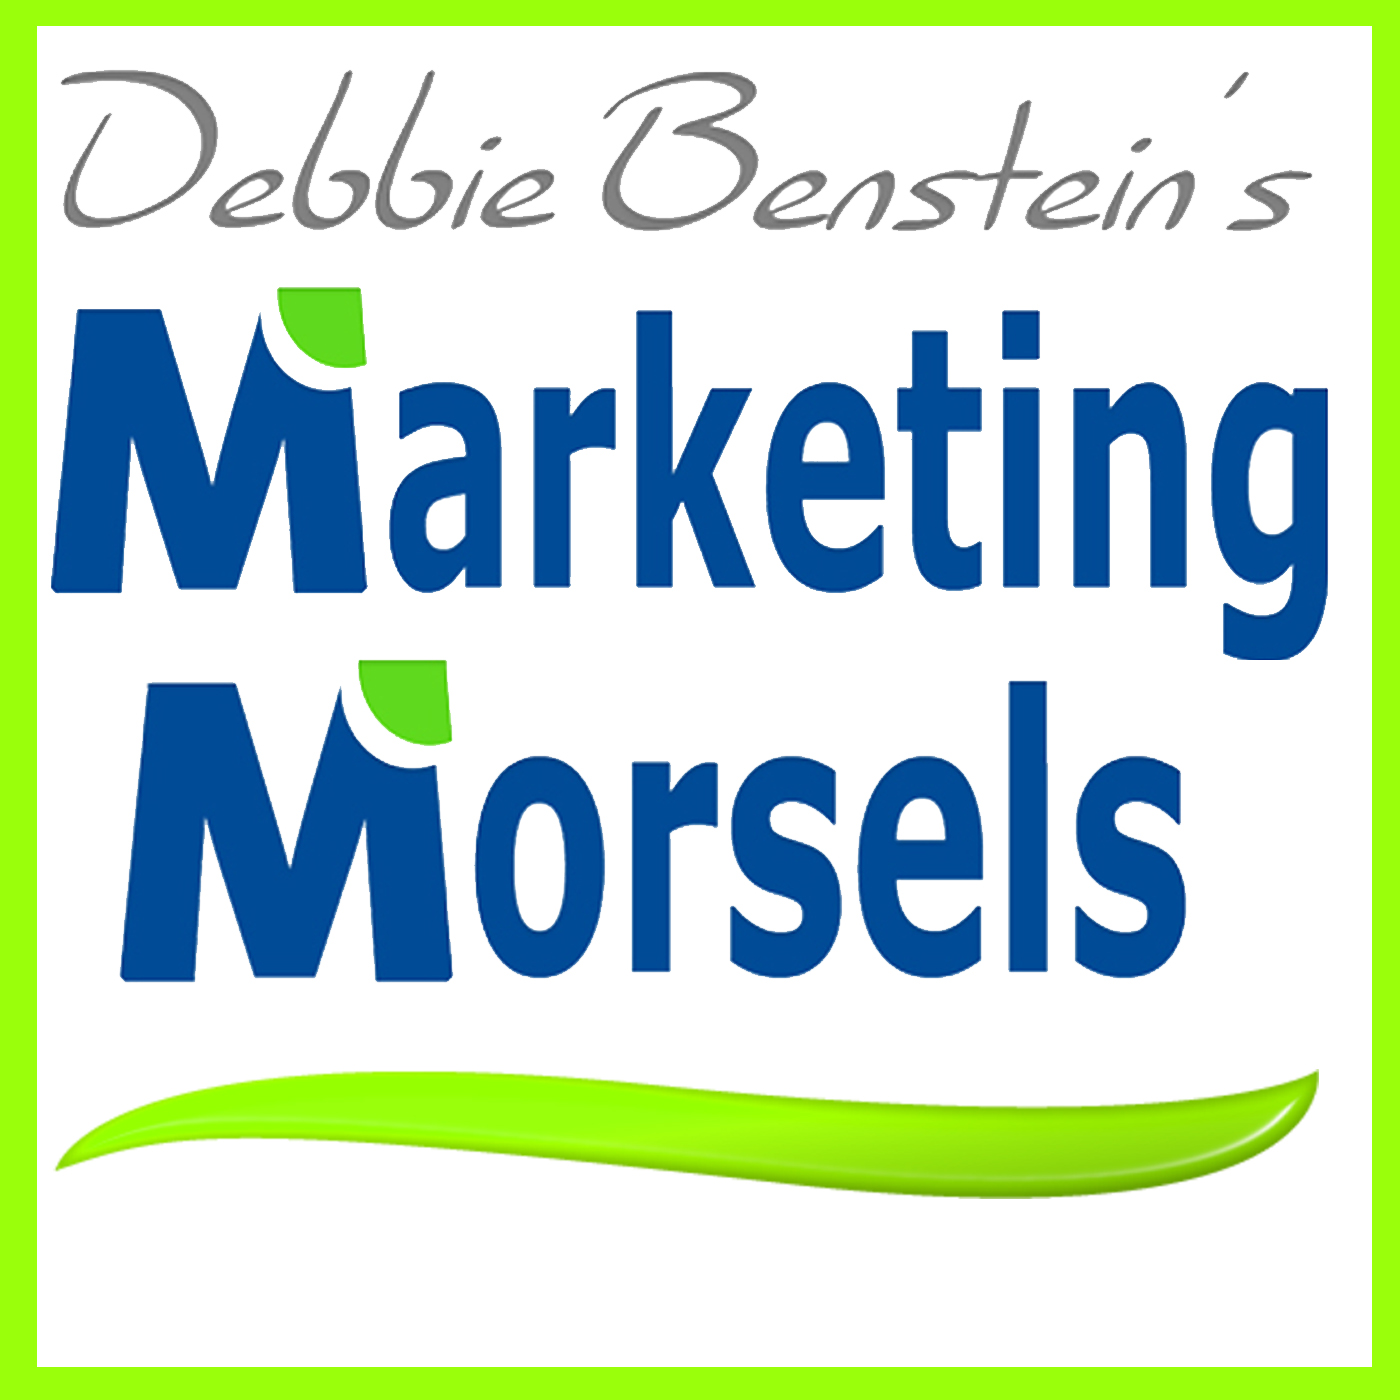 Debbie Benstein's Marketing Morsels